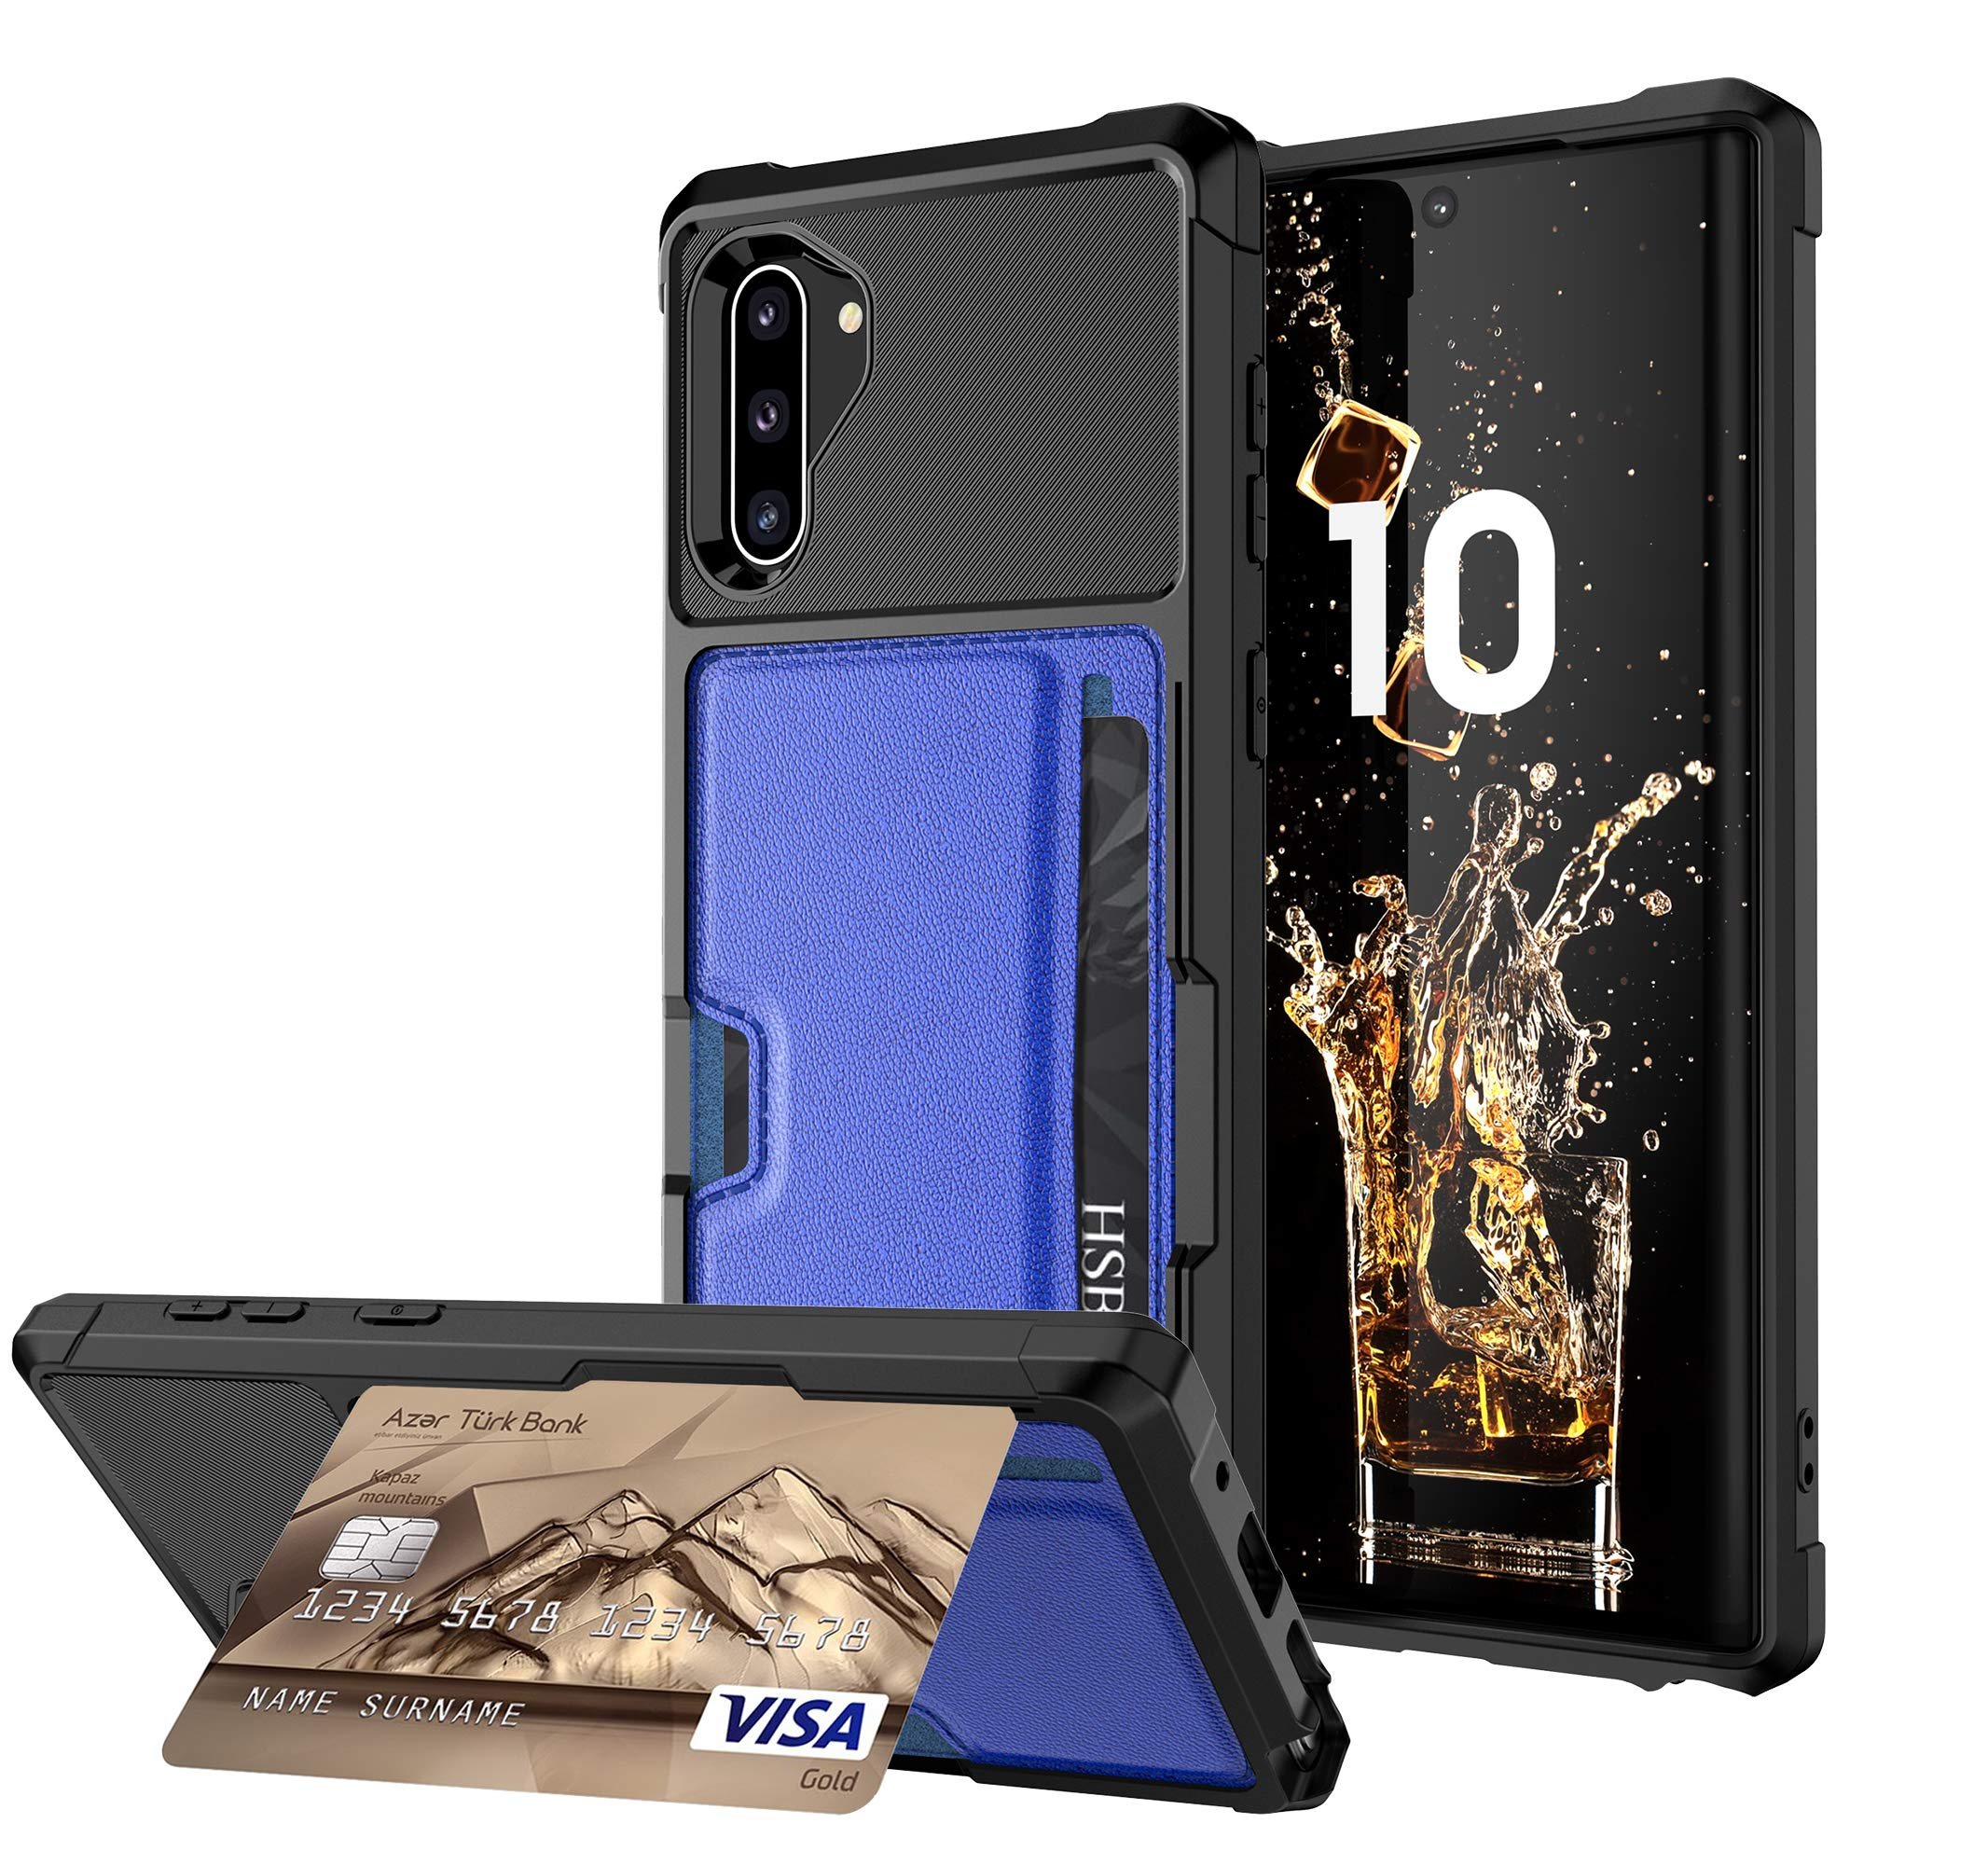 DAMONDY for Note 10 Case,Leather Wallet Purse Card Holders Design Kickstand Cover Soft Shockproof Bumper Metal Plate Build-in Magnetic Car-Mount Function Case for Samsung Note 10 2019-blue by DAMONDY